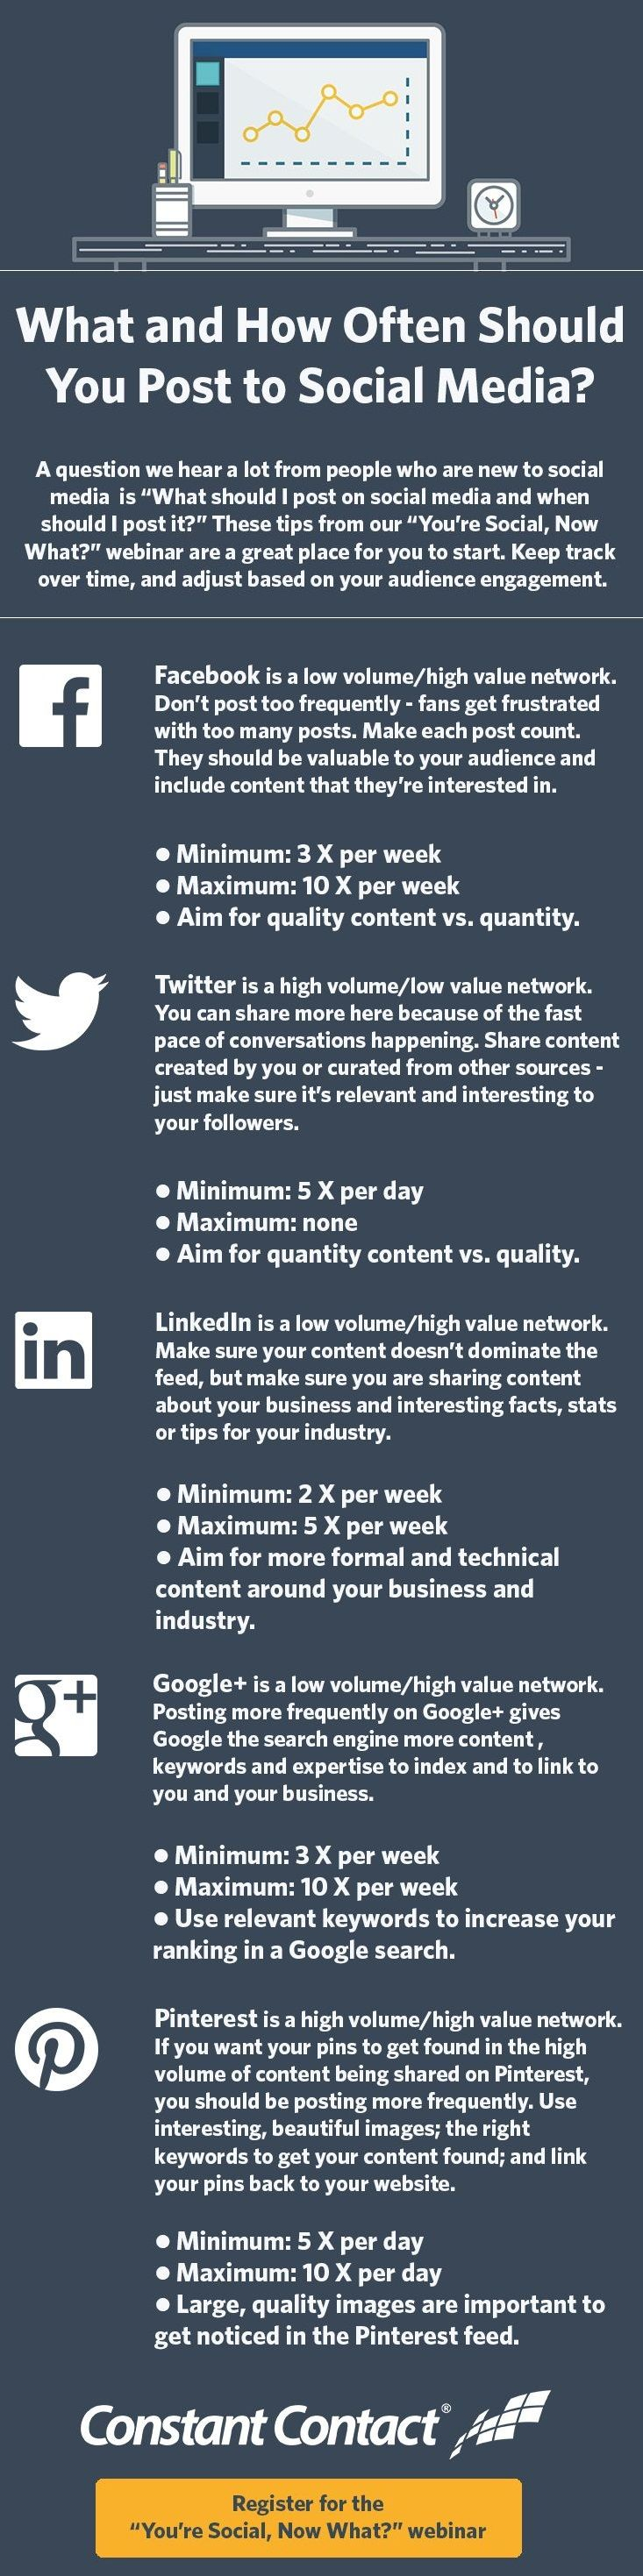 What and How Often Should You Post to Social Media -  #infographic Facebook, Twitter, Pinterest, GooglePlus